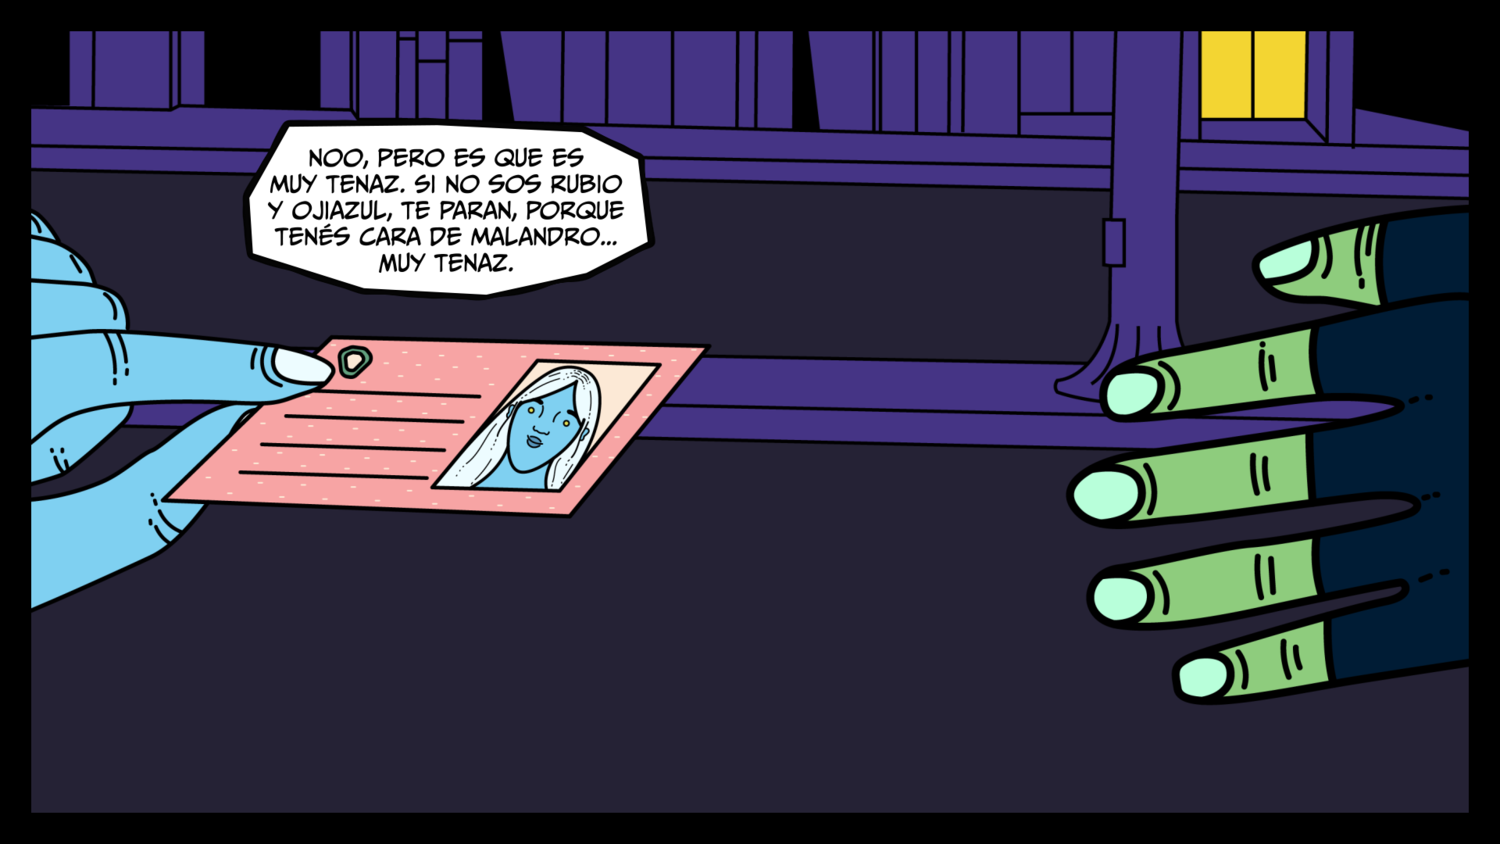 capitulo_030-01-17-06.png